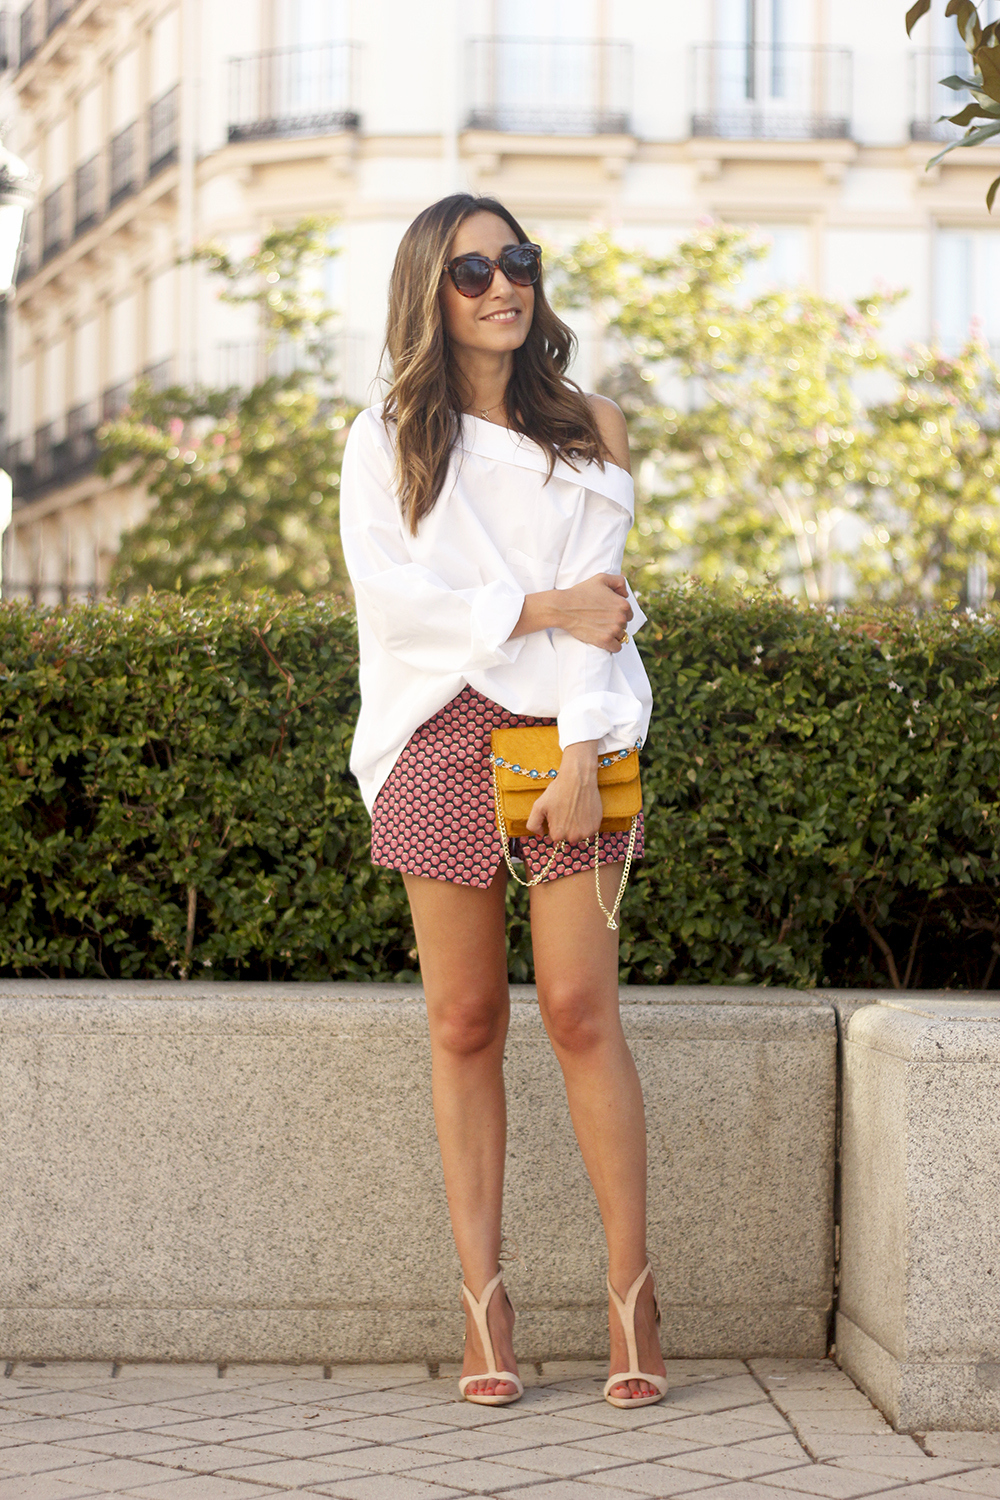 White shirt with printed shorts uterquë bag summer outfit style heels18